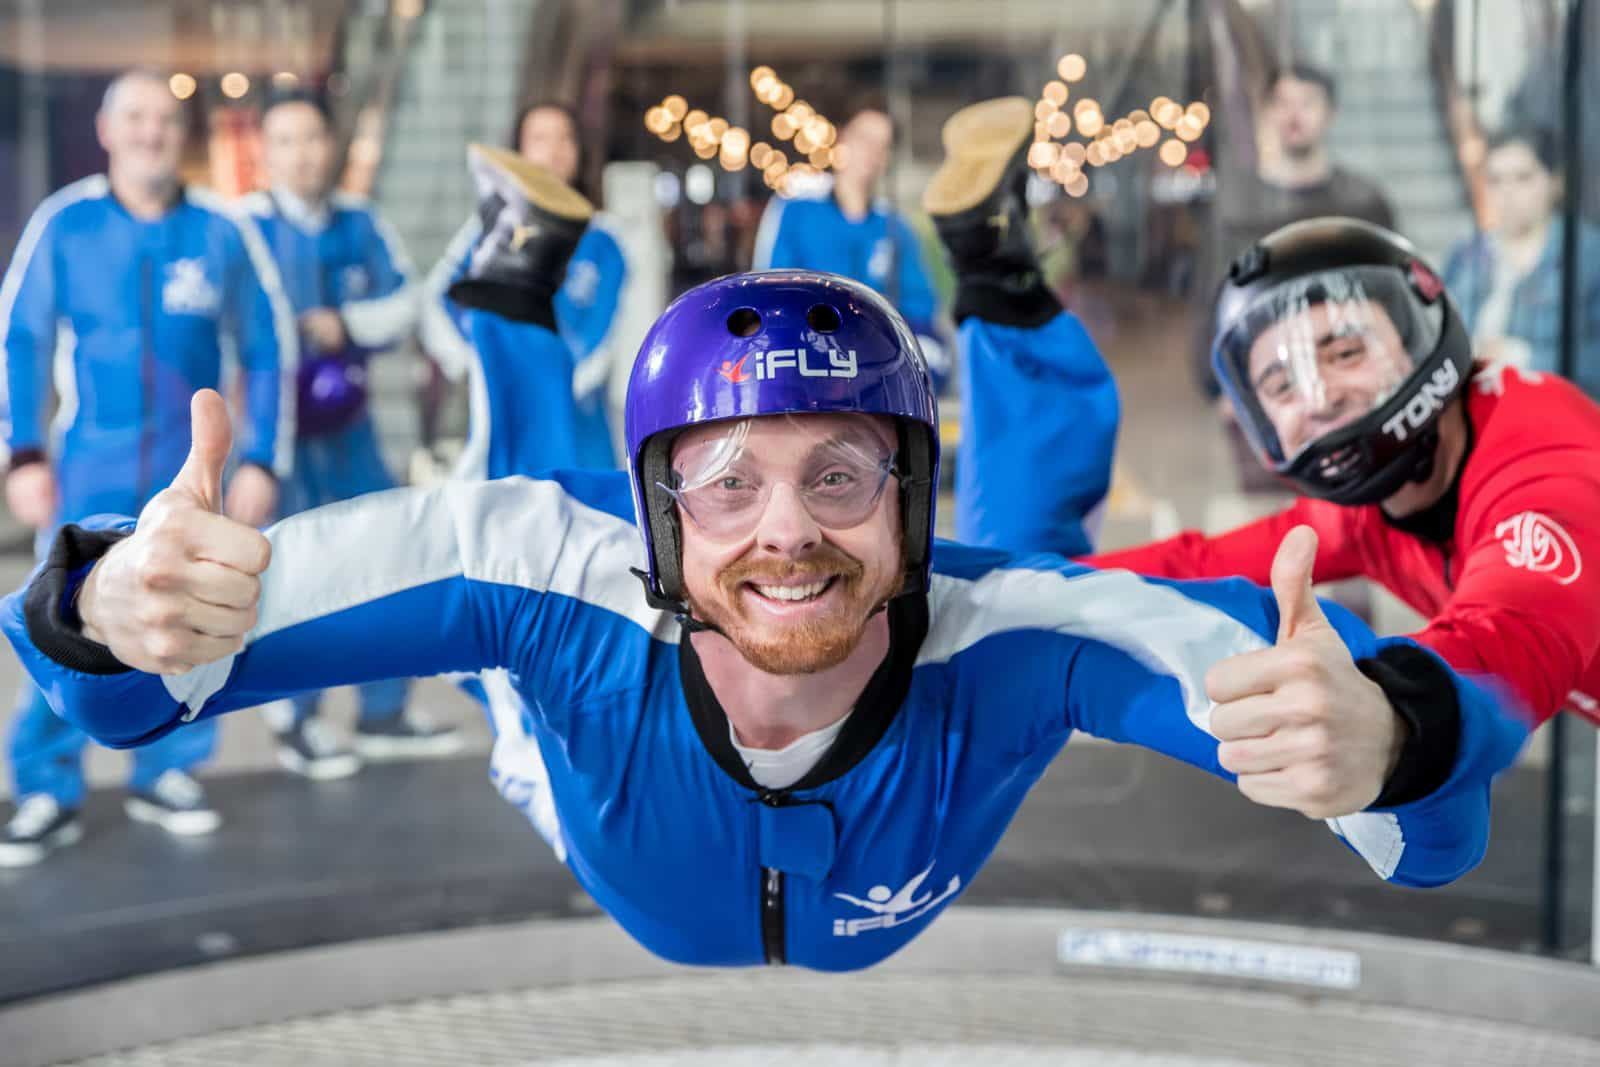 iFLY Perth Indoor Skydiving, Rivervale, Western Australia